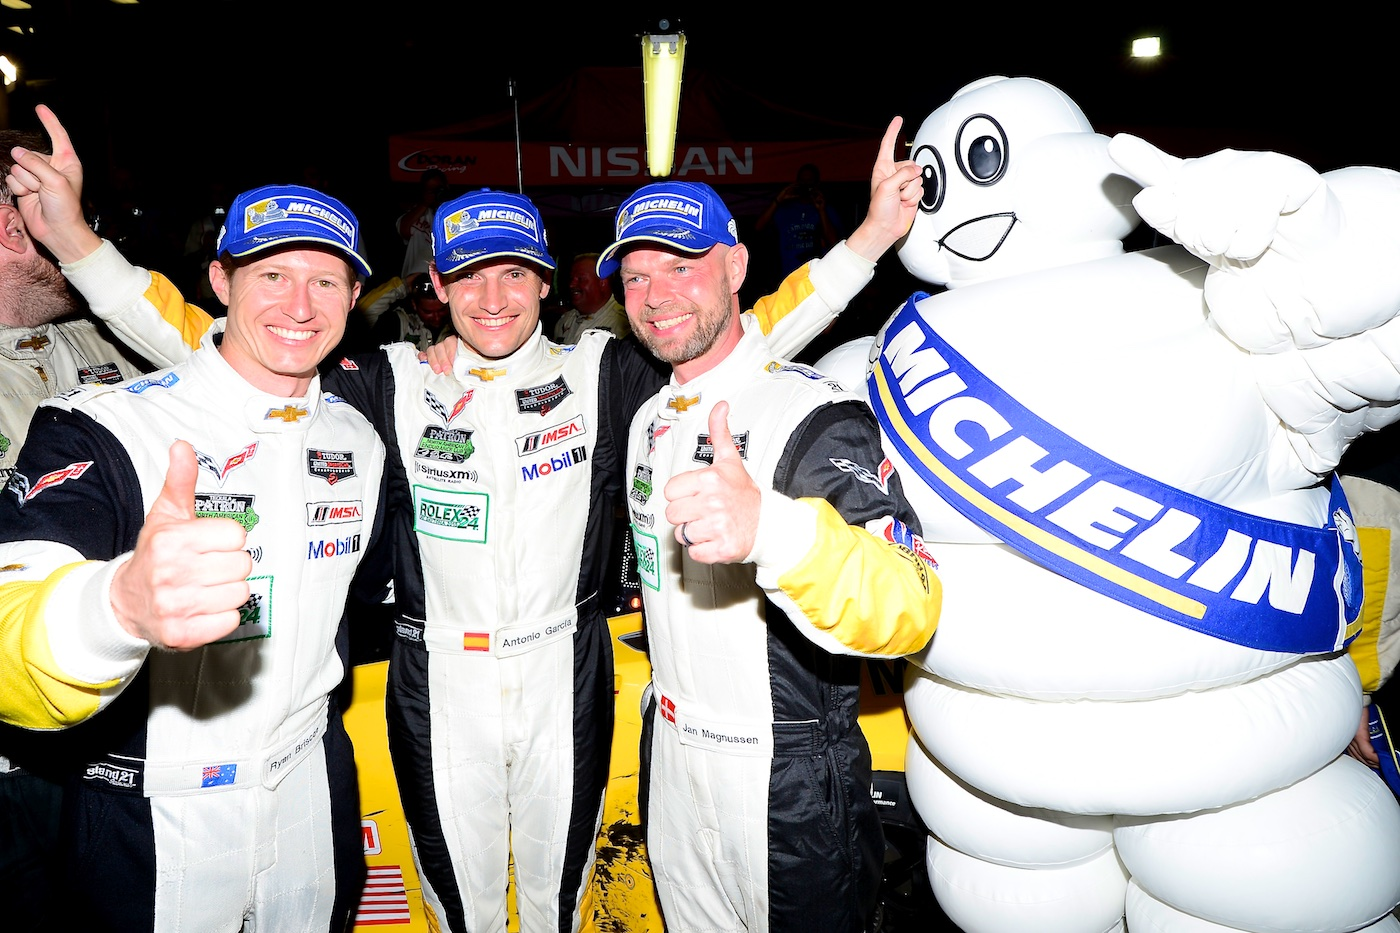 Corvette win the first 36 hours of 2015